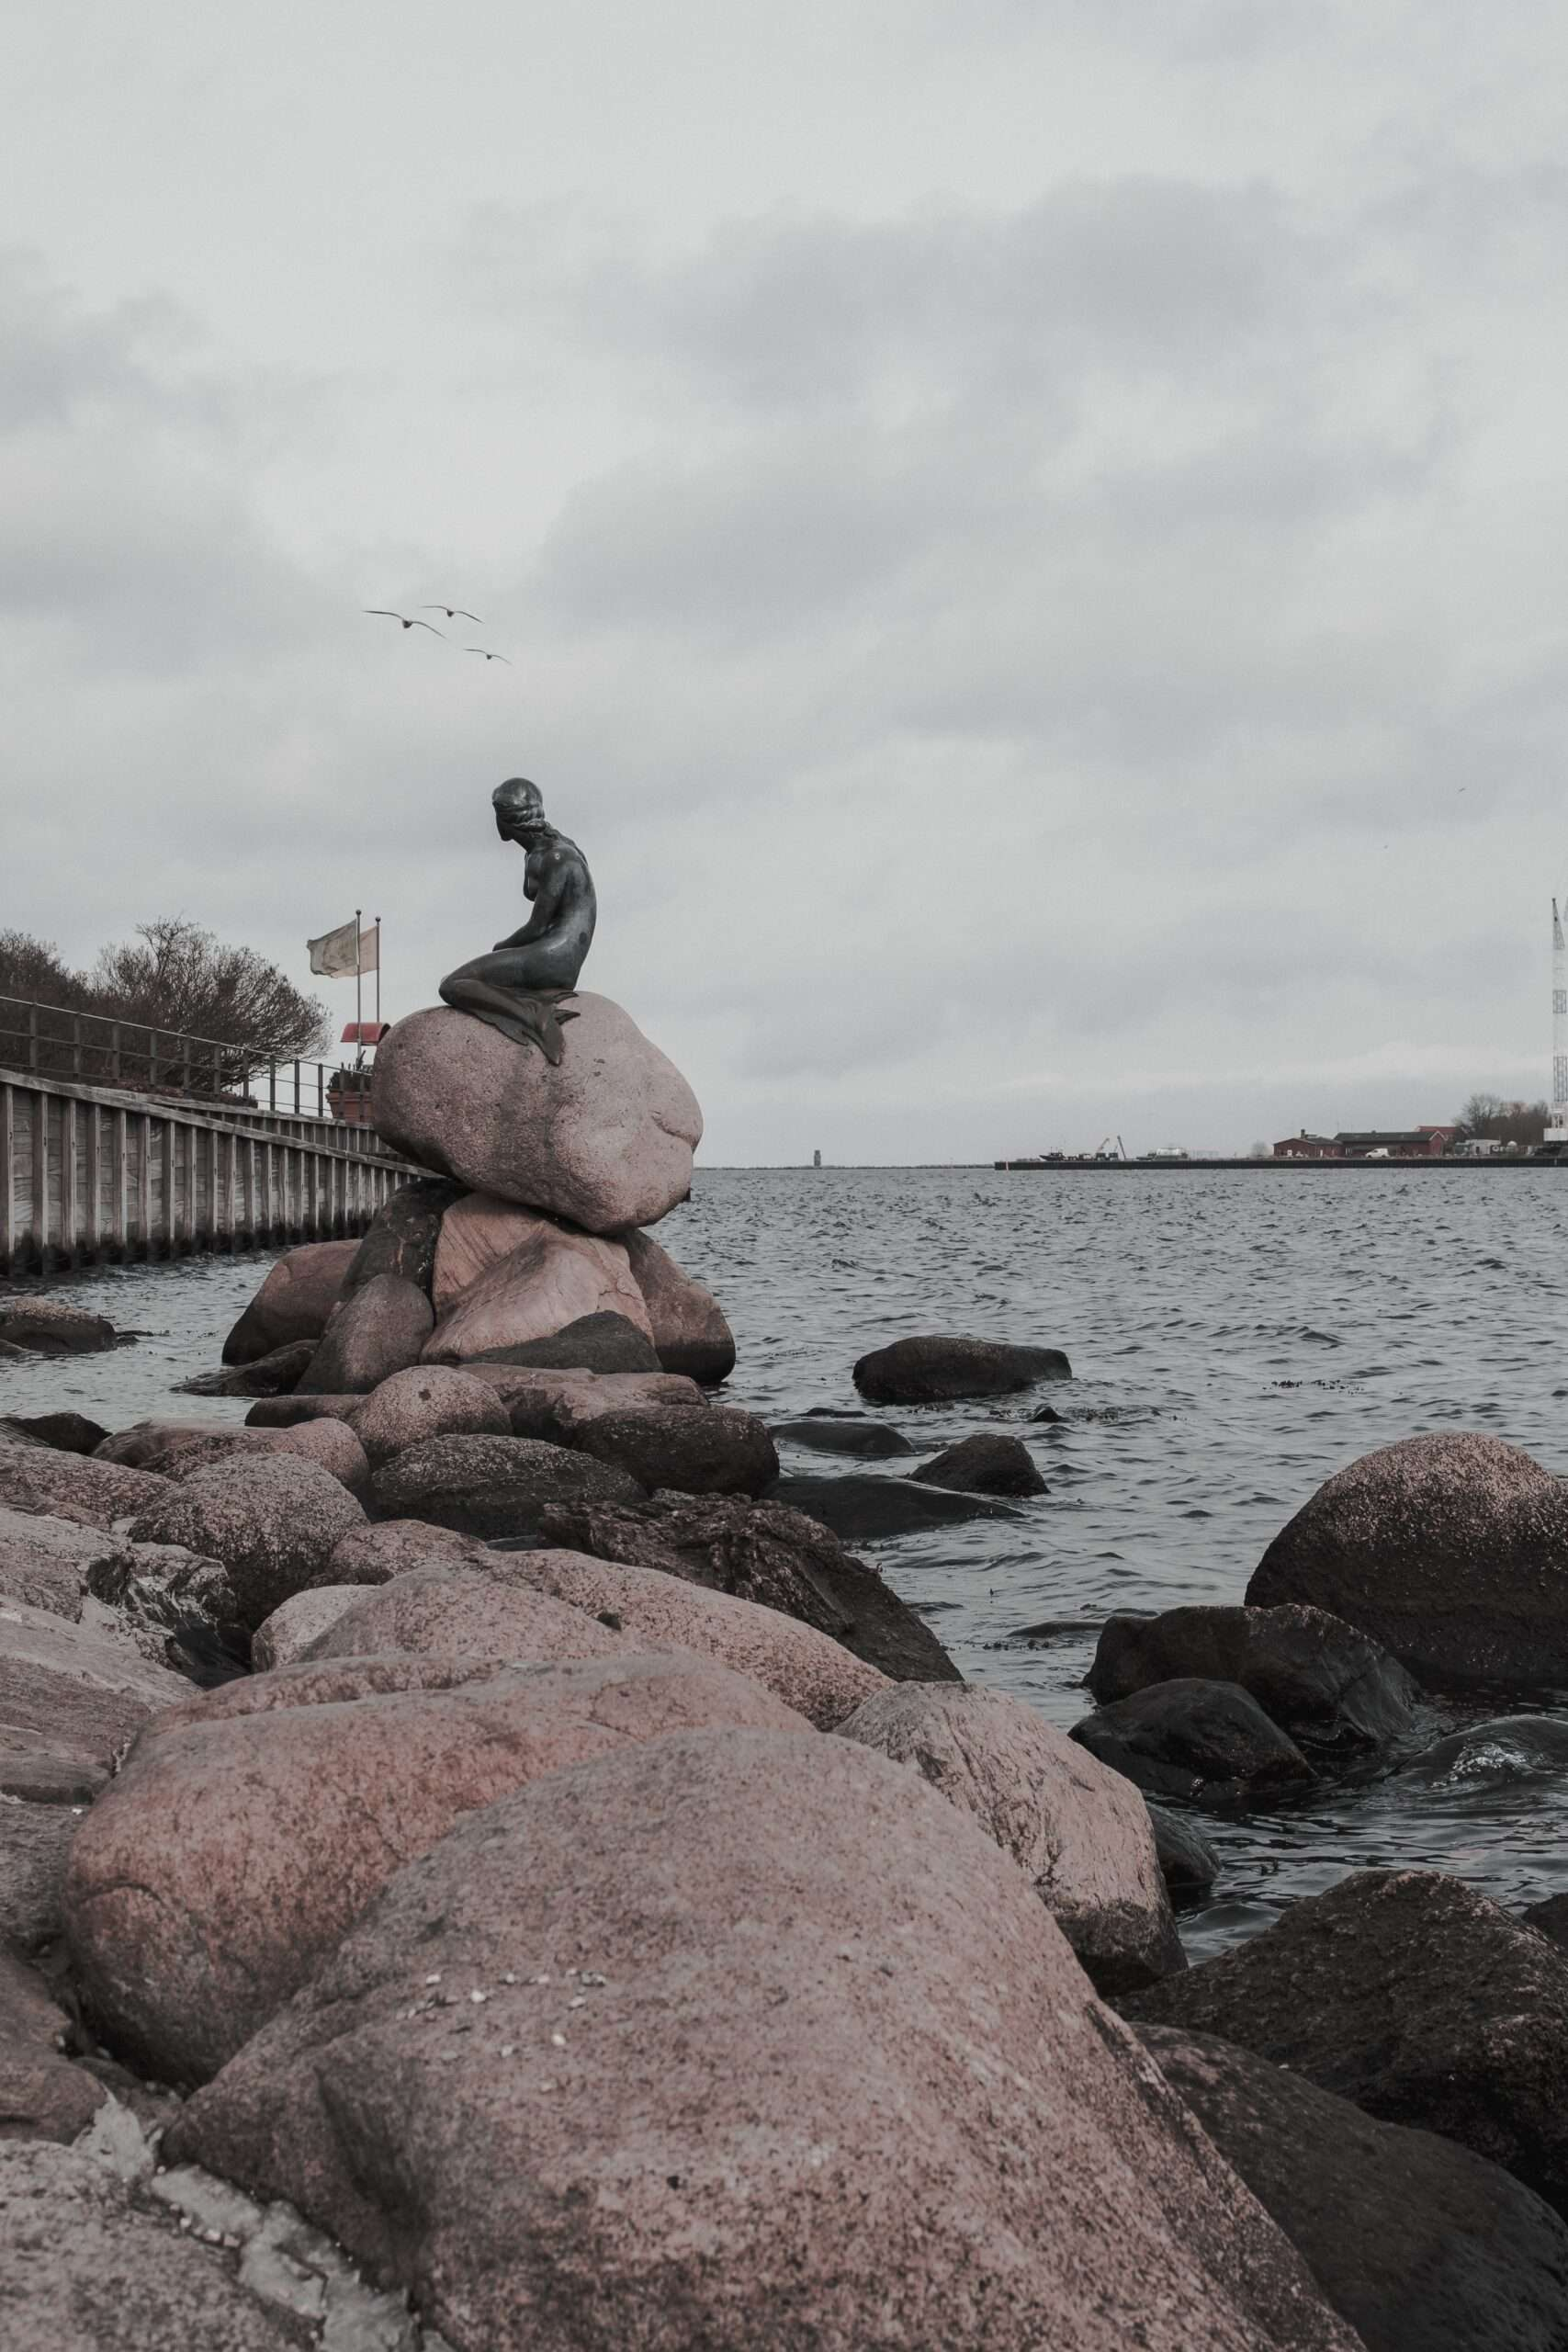 The Little Mermaid Statue on the waterfront in Copenhagen